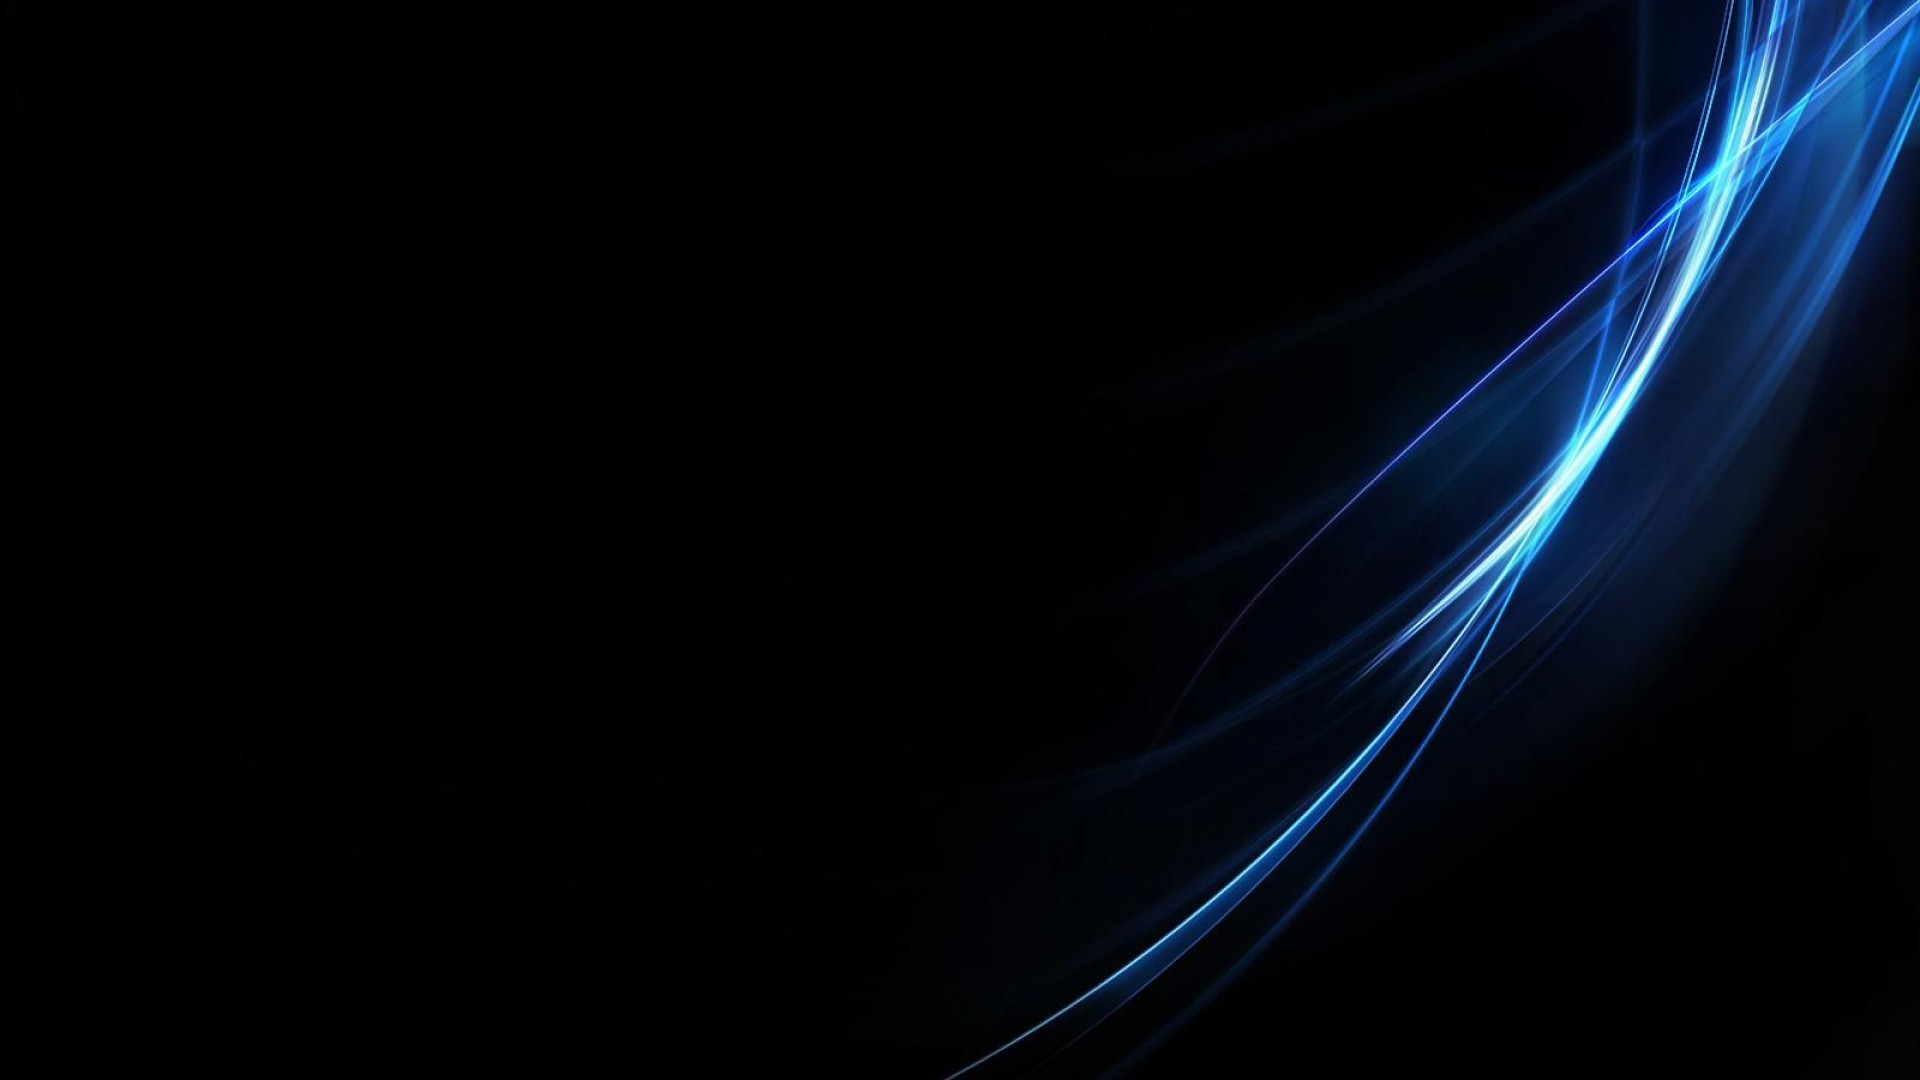 Blue abstract black wallpapers desktop 221826   Black Background and .